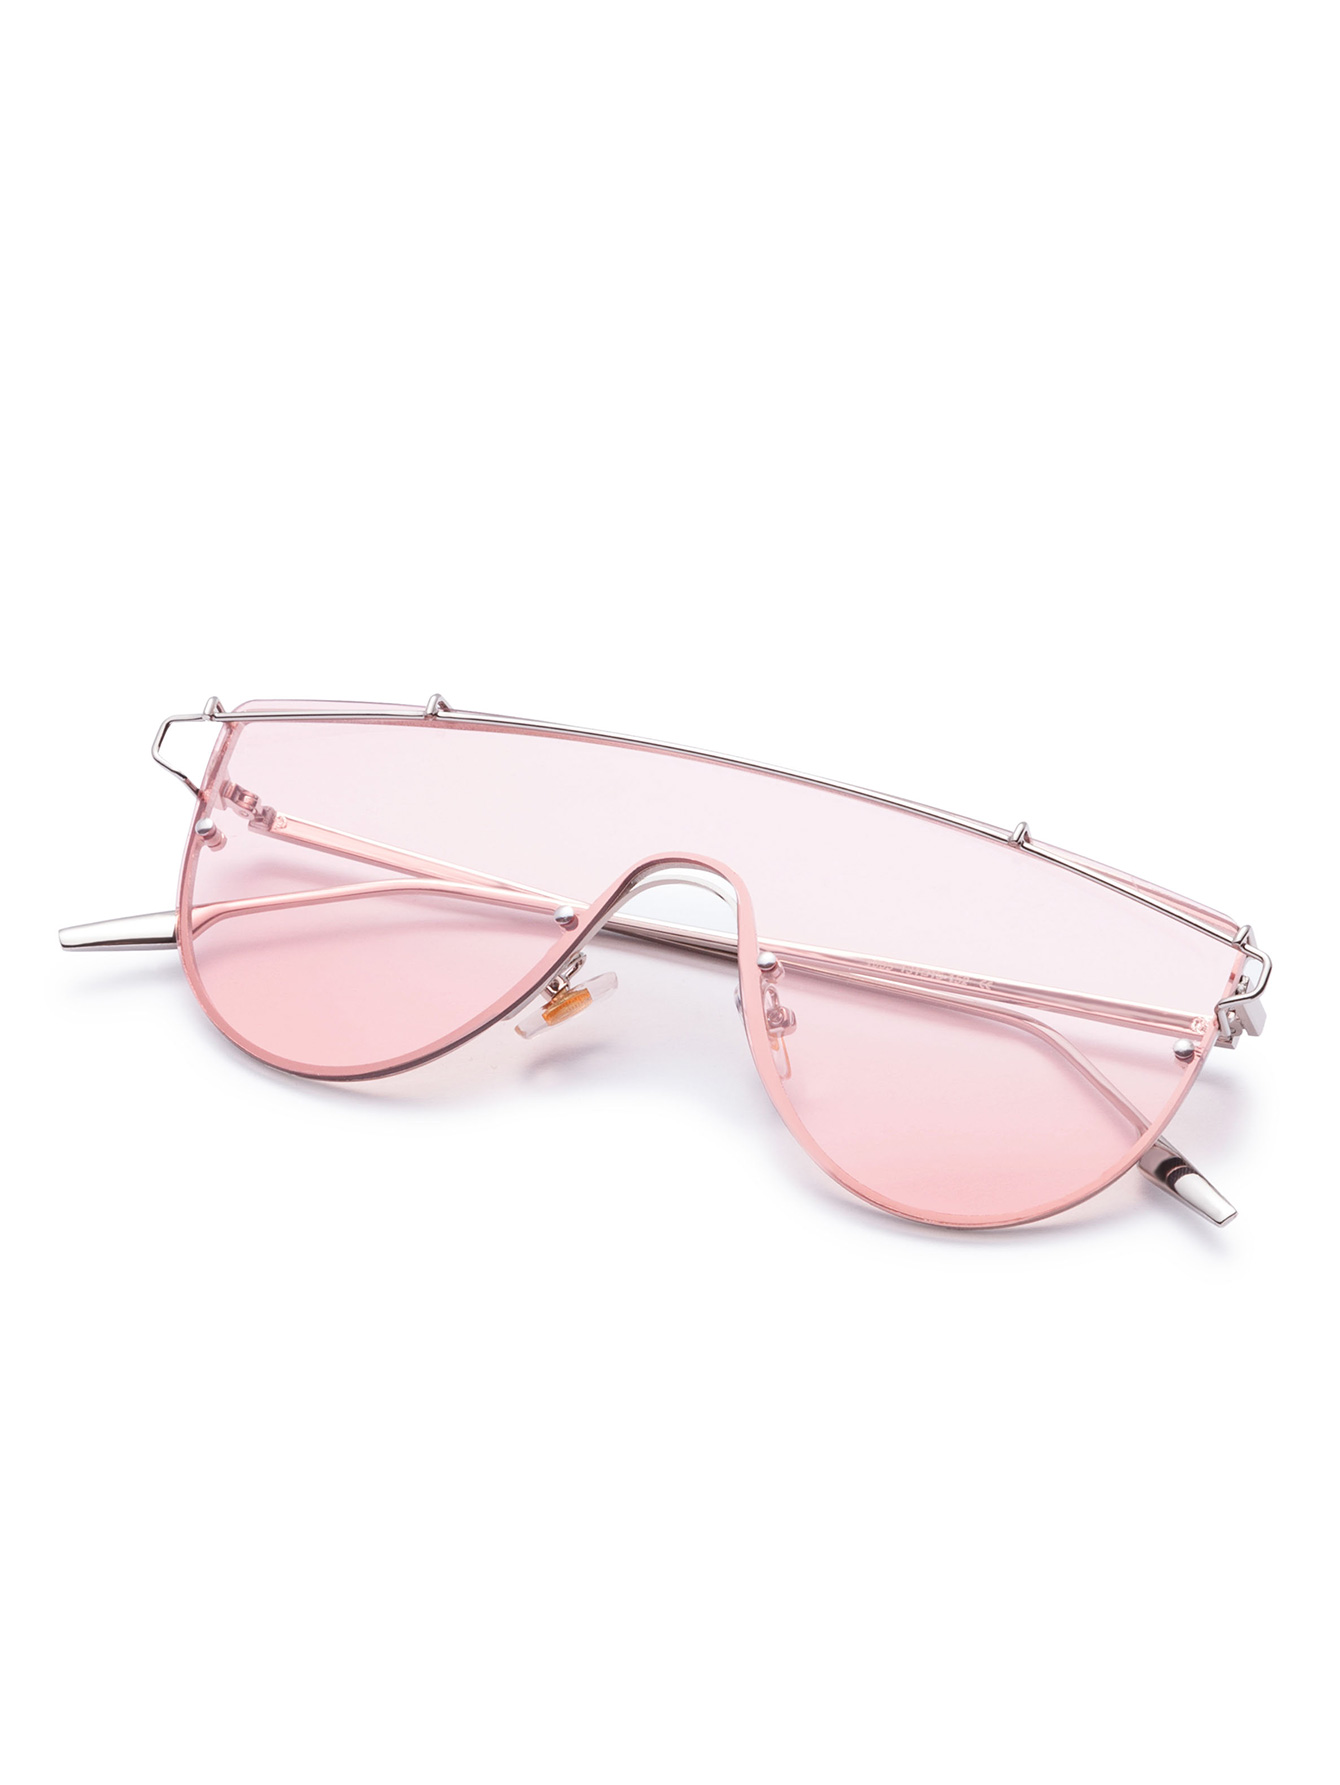 f035897d6d Pink Clear Lens Metal Frame Curved Sunglasses -SheIn(Sheinside)